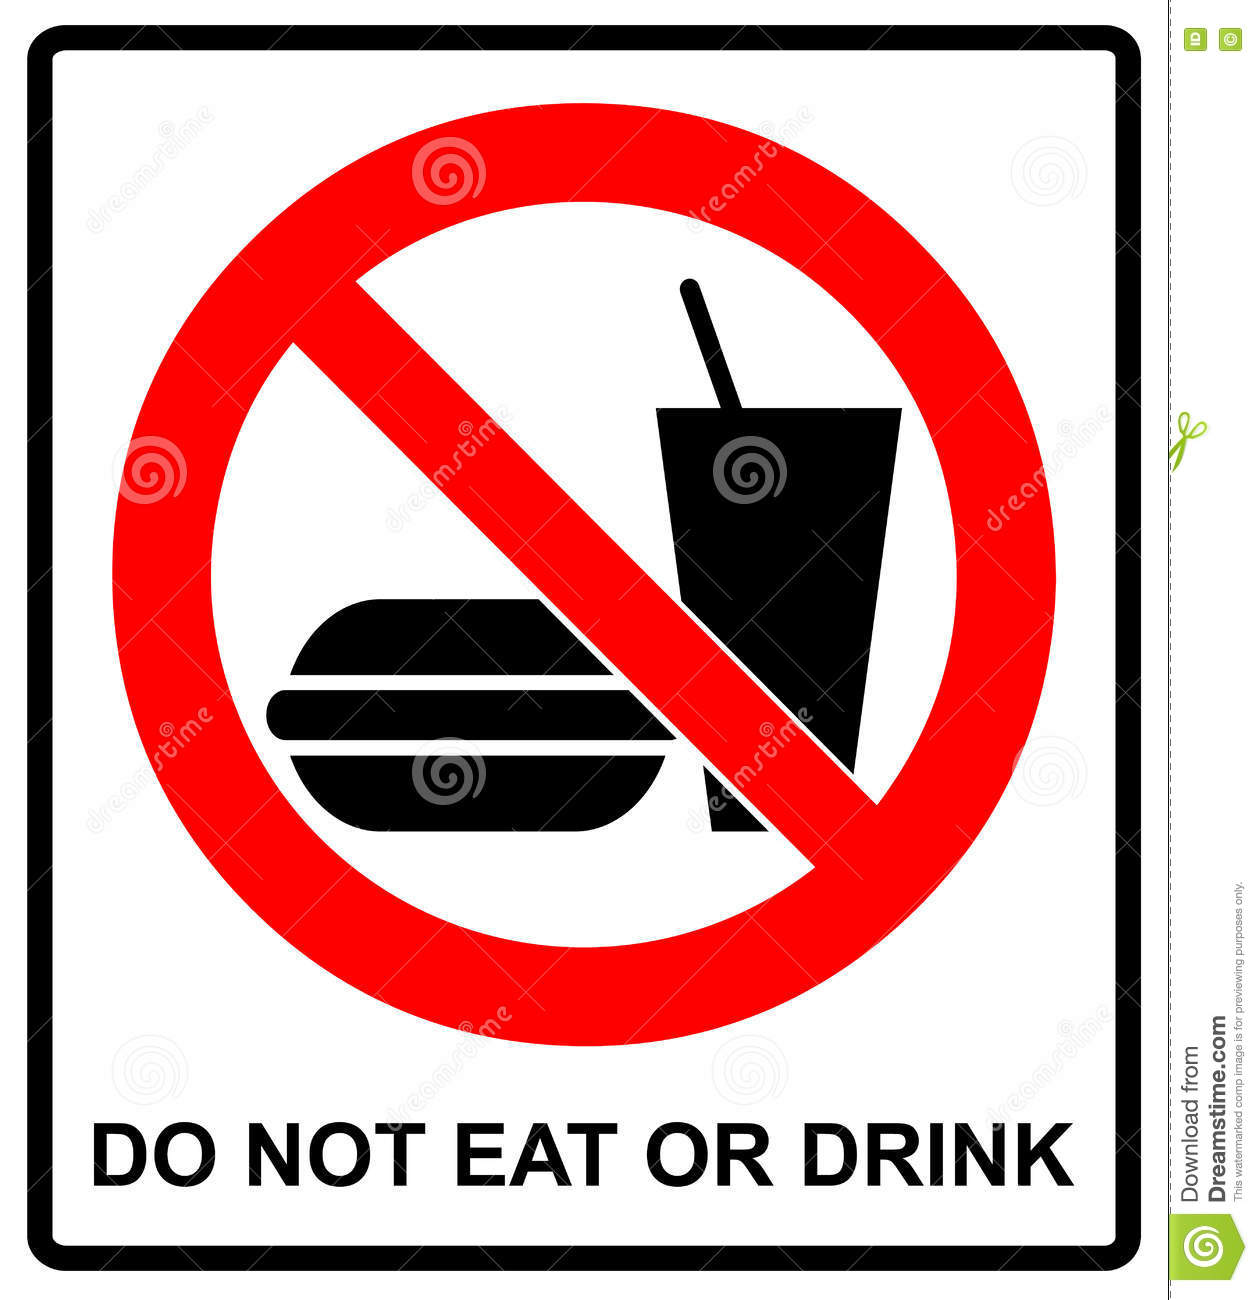 signs eating drinking places prohibition symbol prohibited general illustration smoking vector sticker clipart pictogram preview